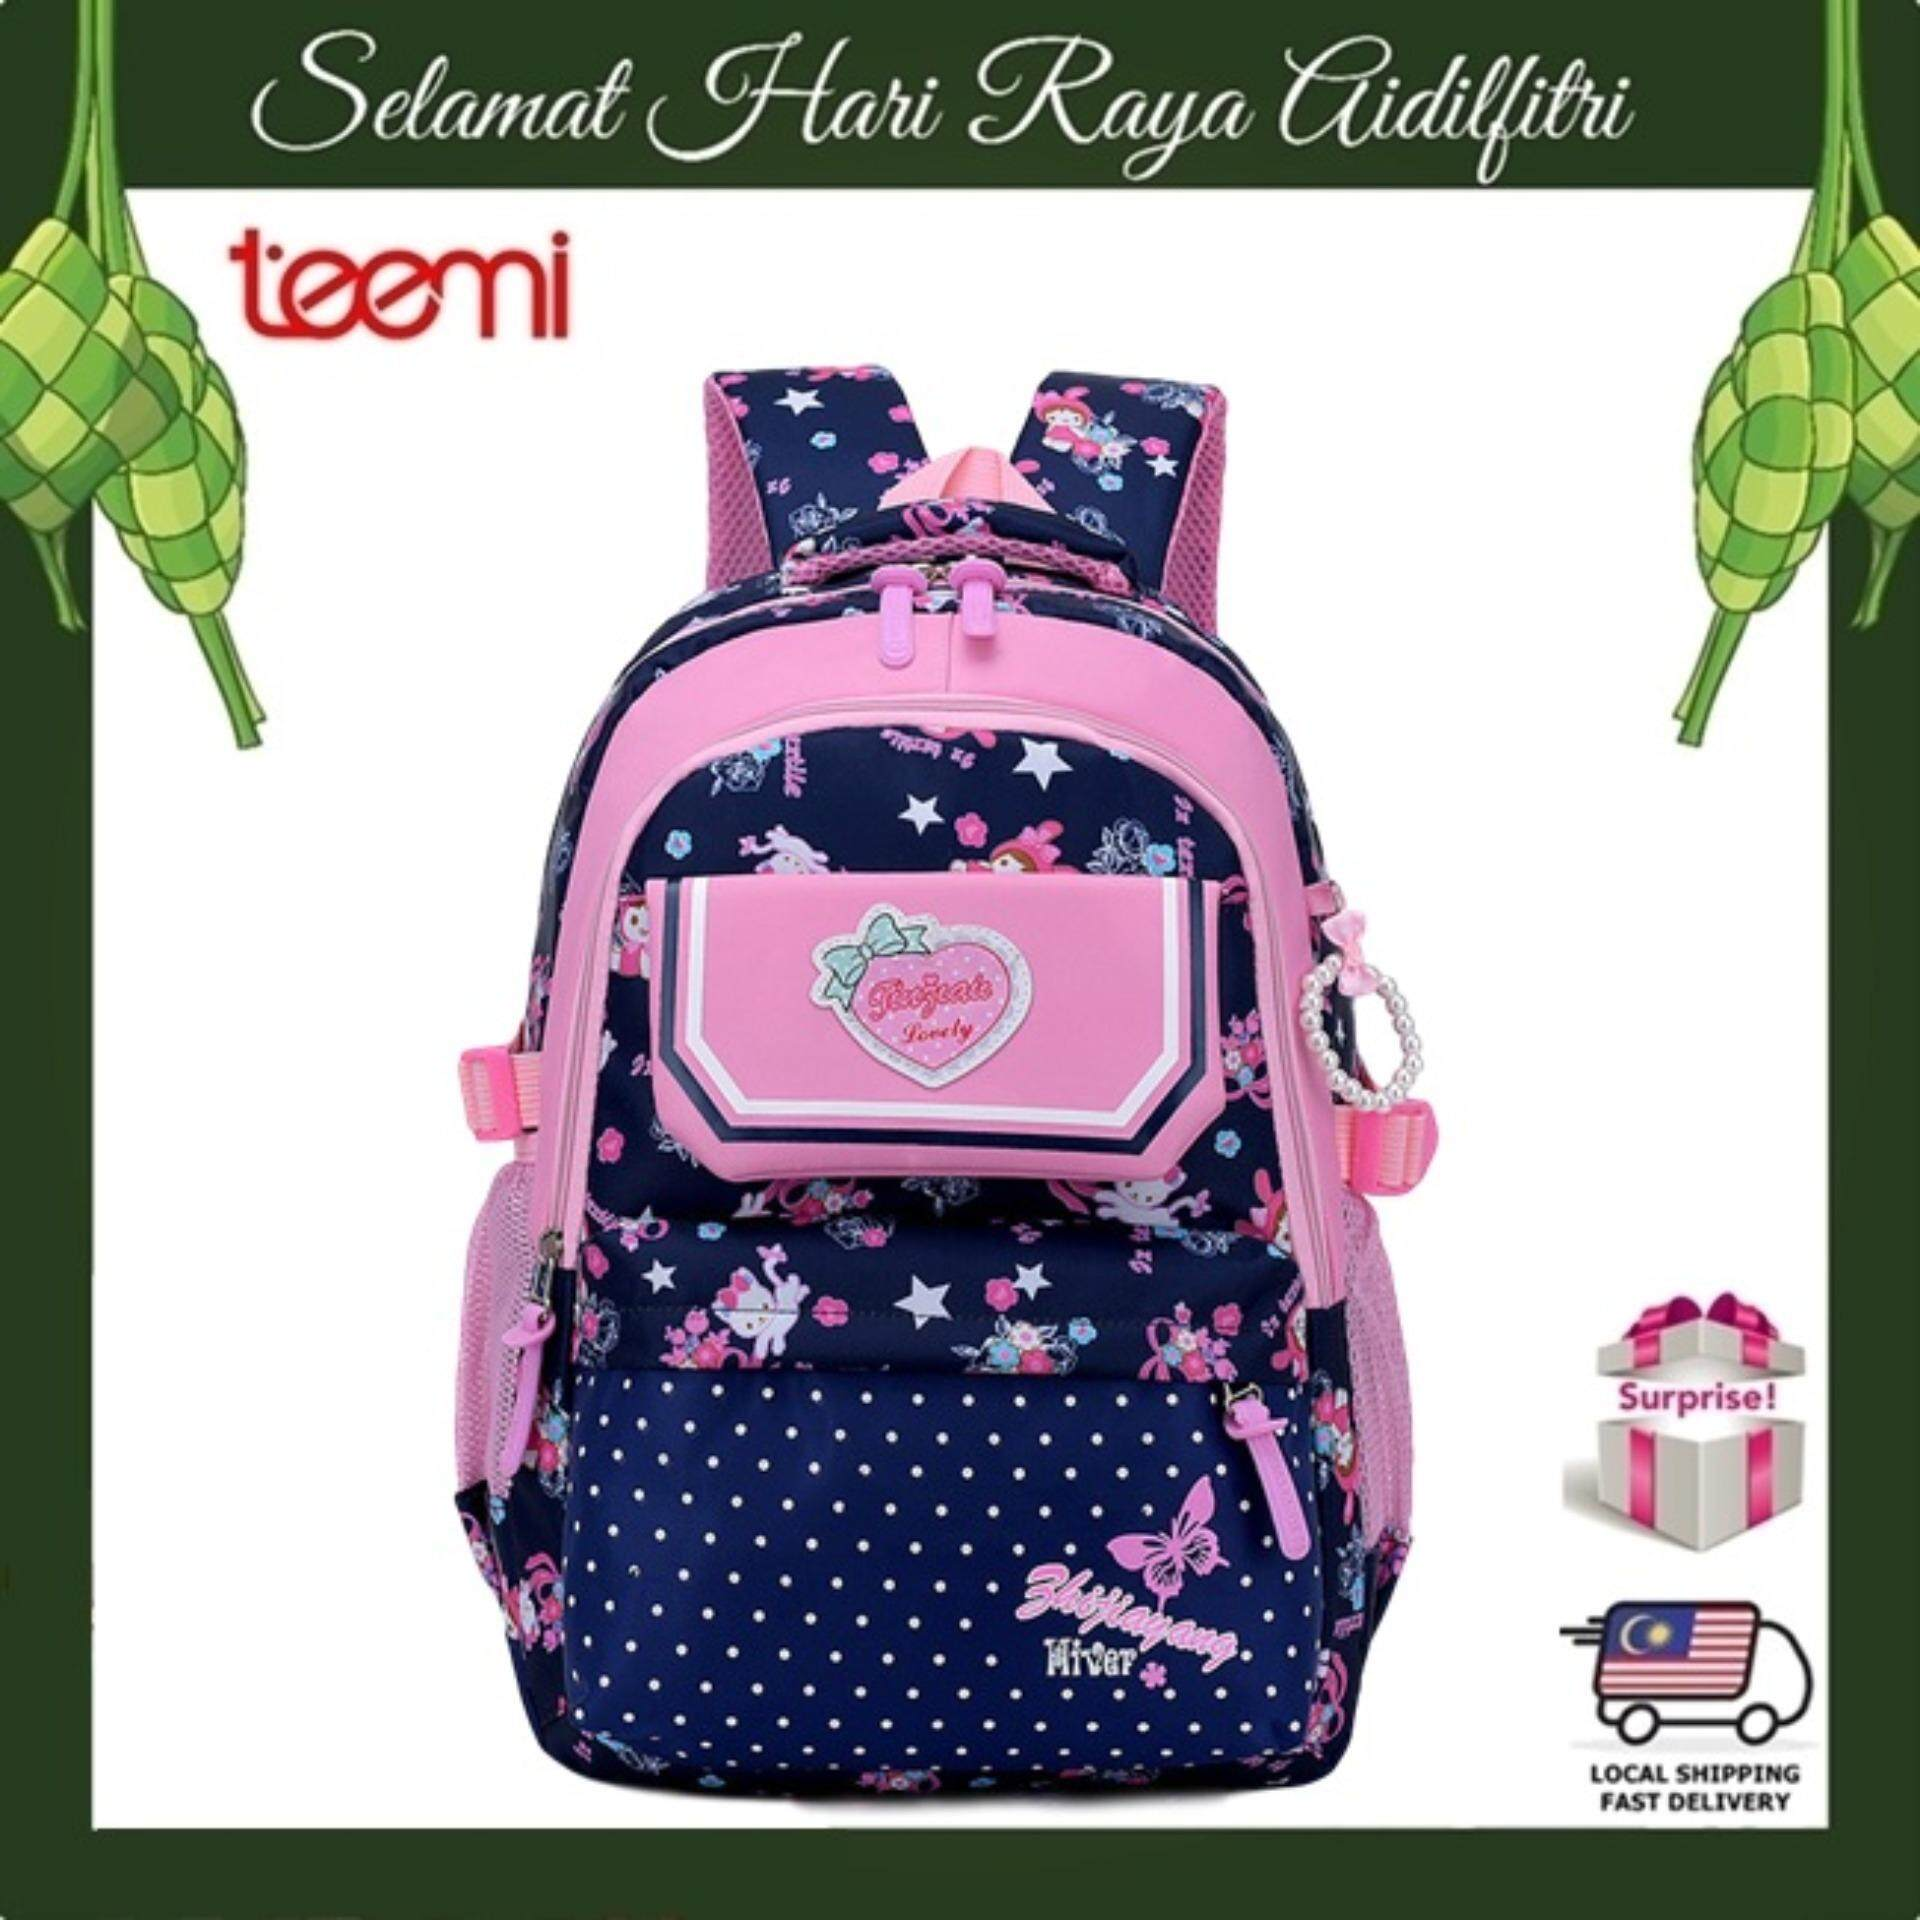 TEEMI Dreamy Candy Color Girls Princess Water Resistant Primary Secondary Nylon Orthopedic School Bag Strawberry Butterfly Printing Kids Children Laptop Backpack - Dark Blue